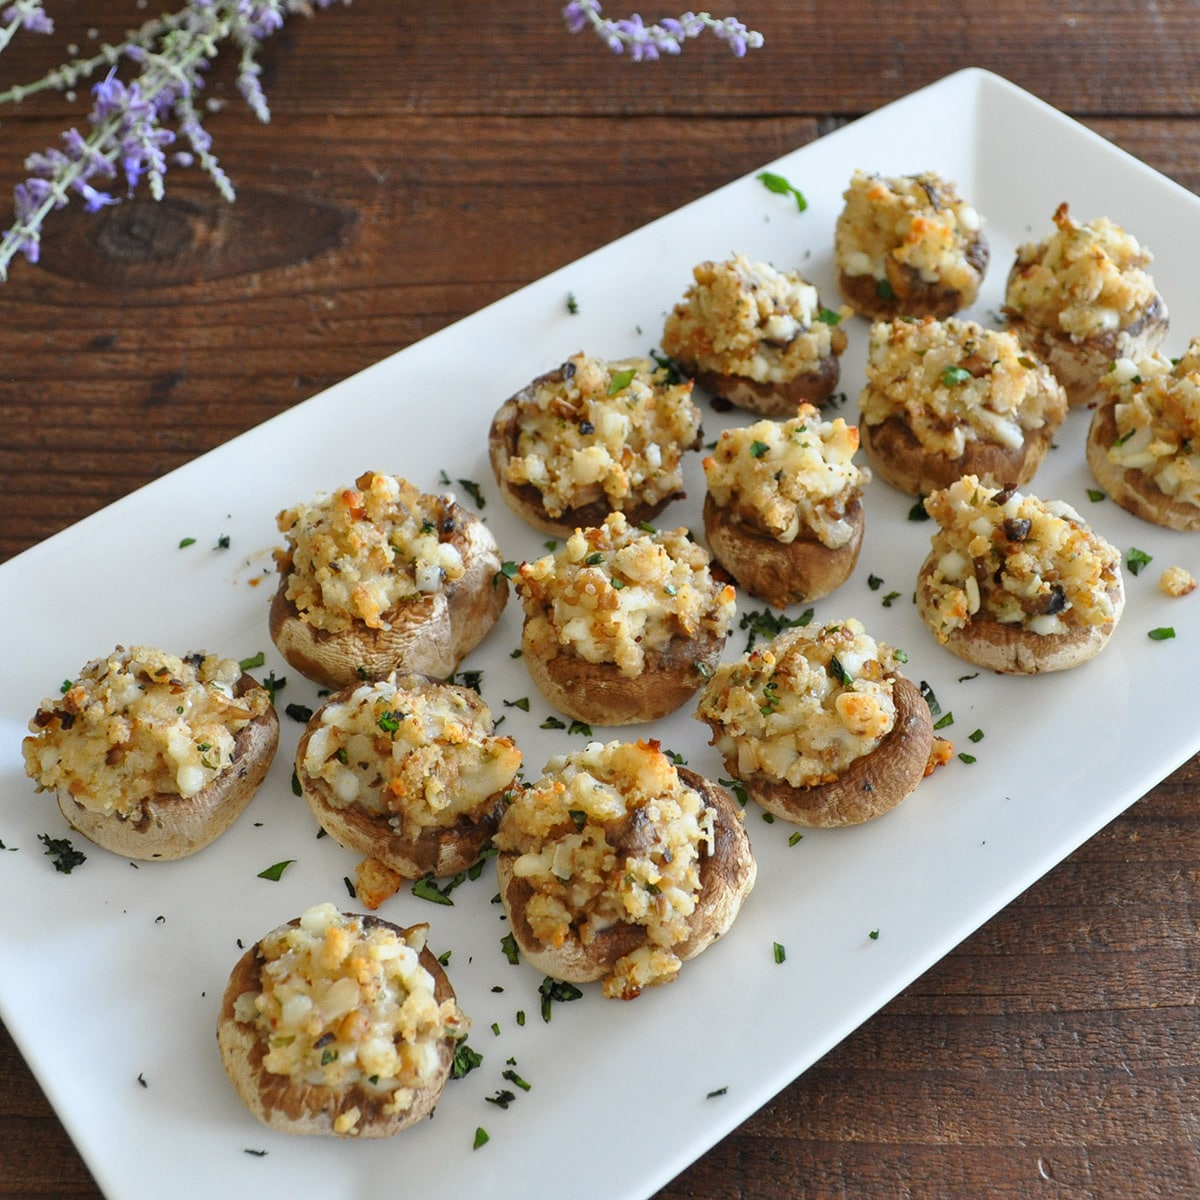 stuffed mushrooms on a white platter next to a bundle of lavendar